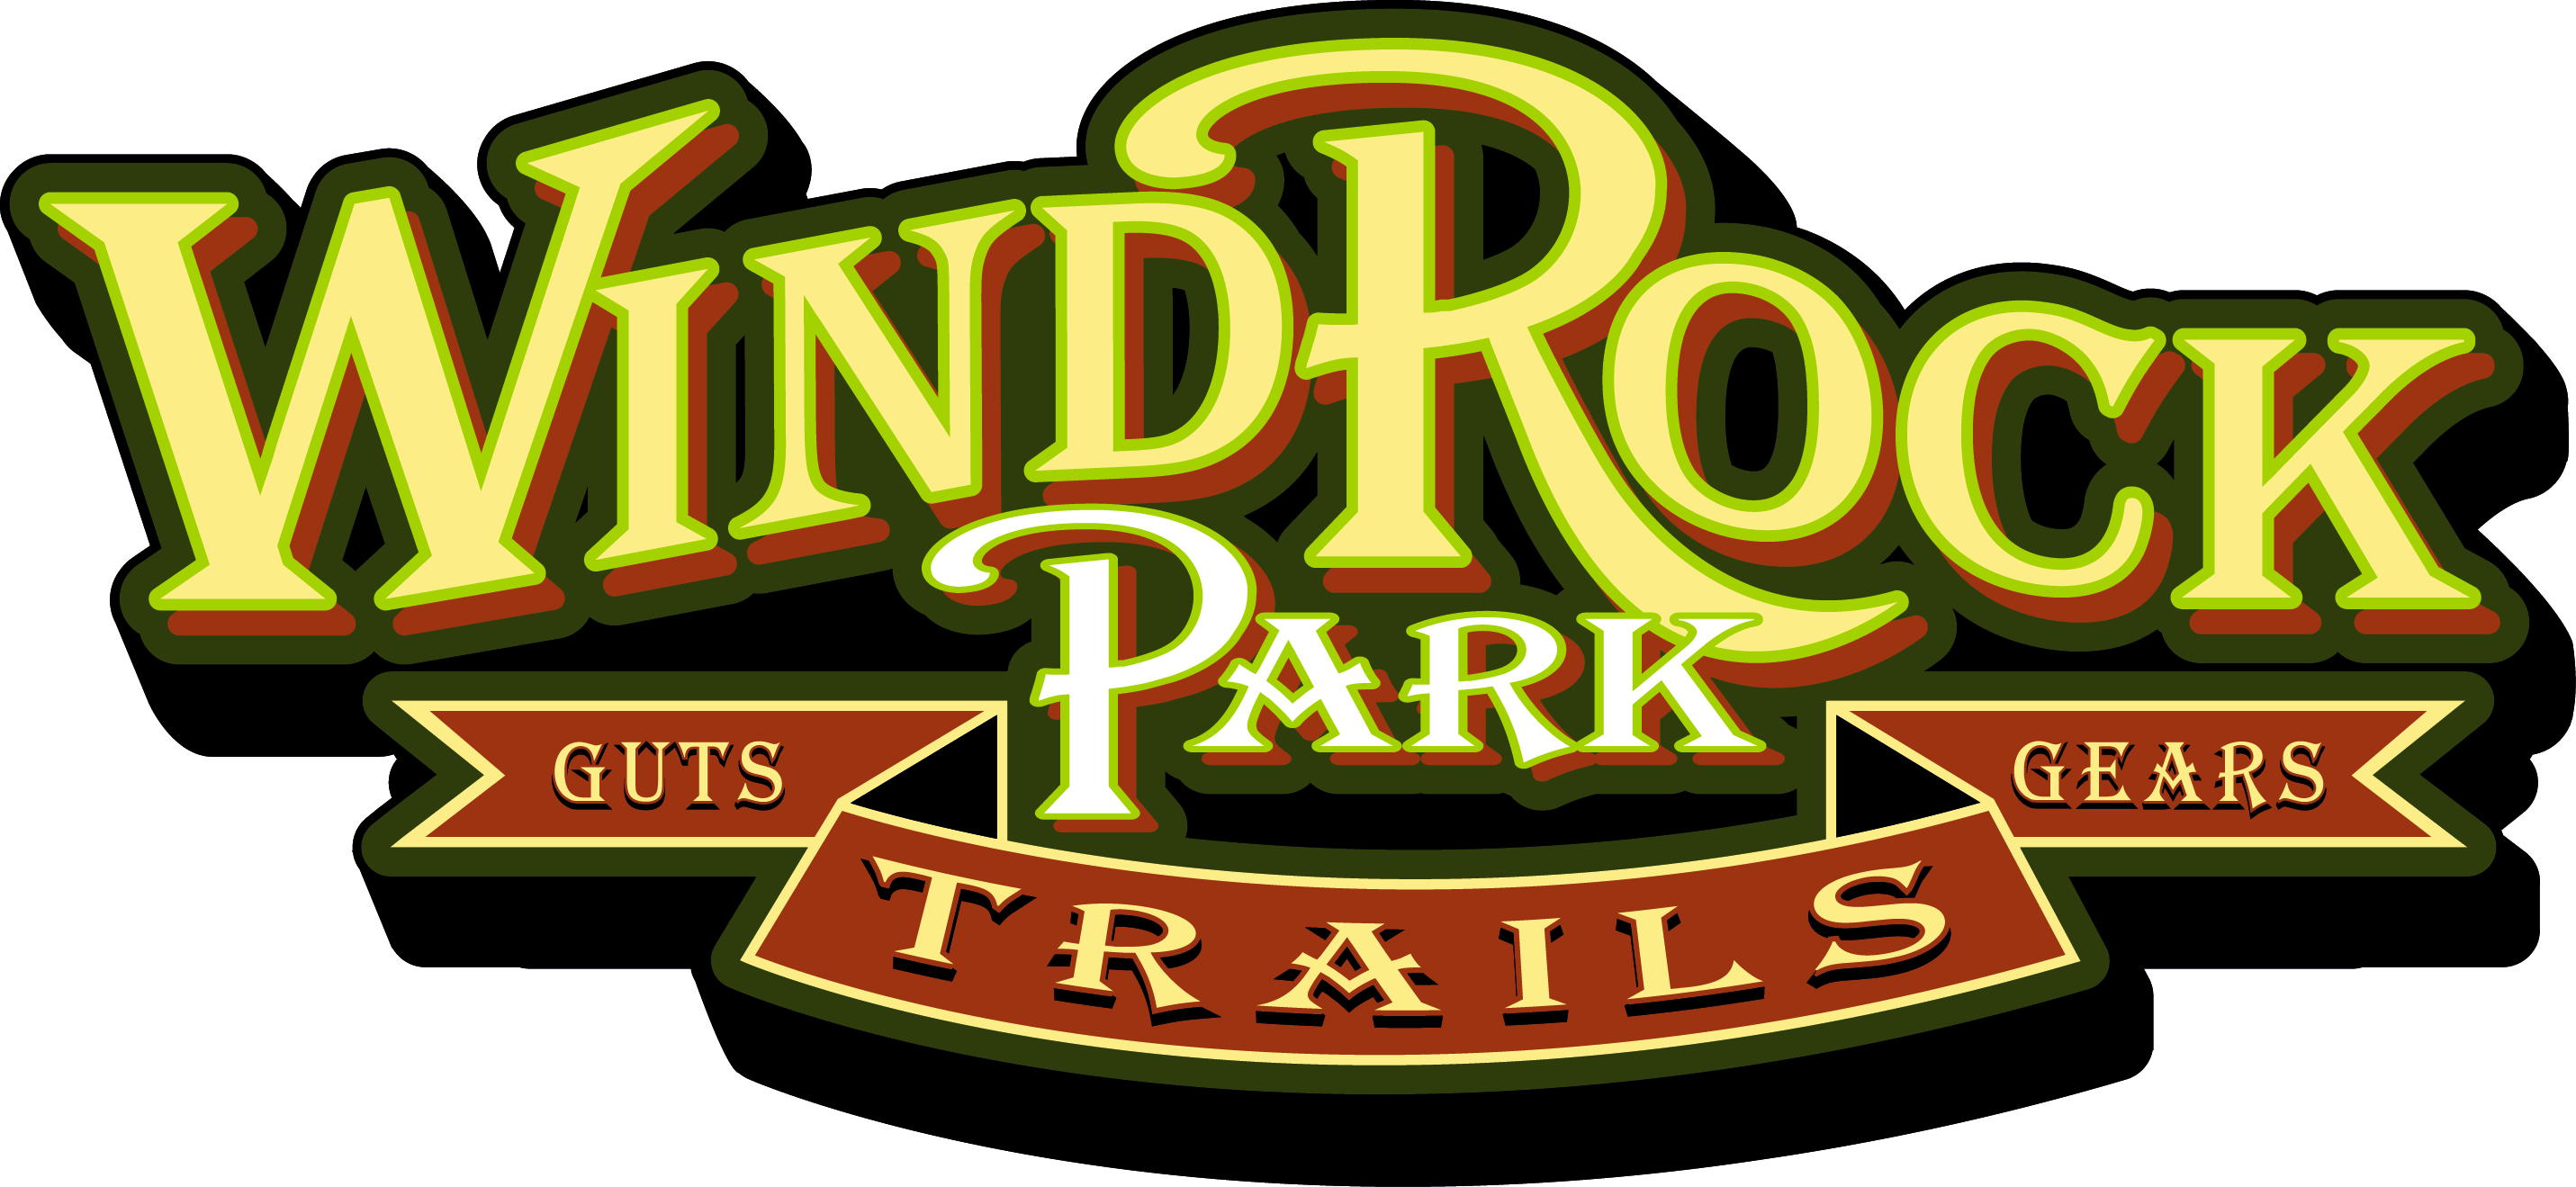 wind rock park trails logo